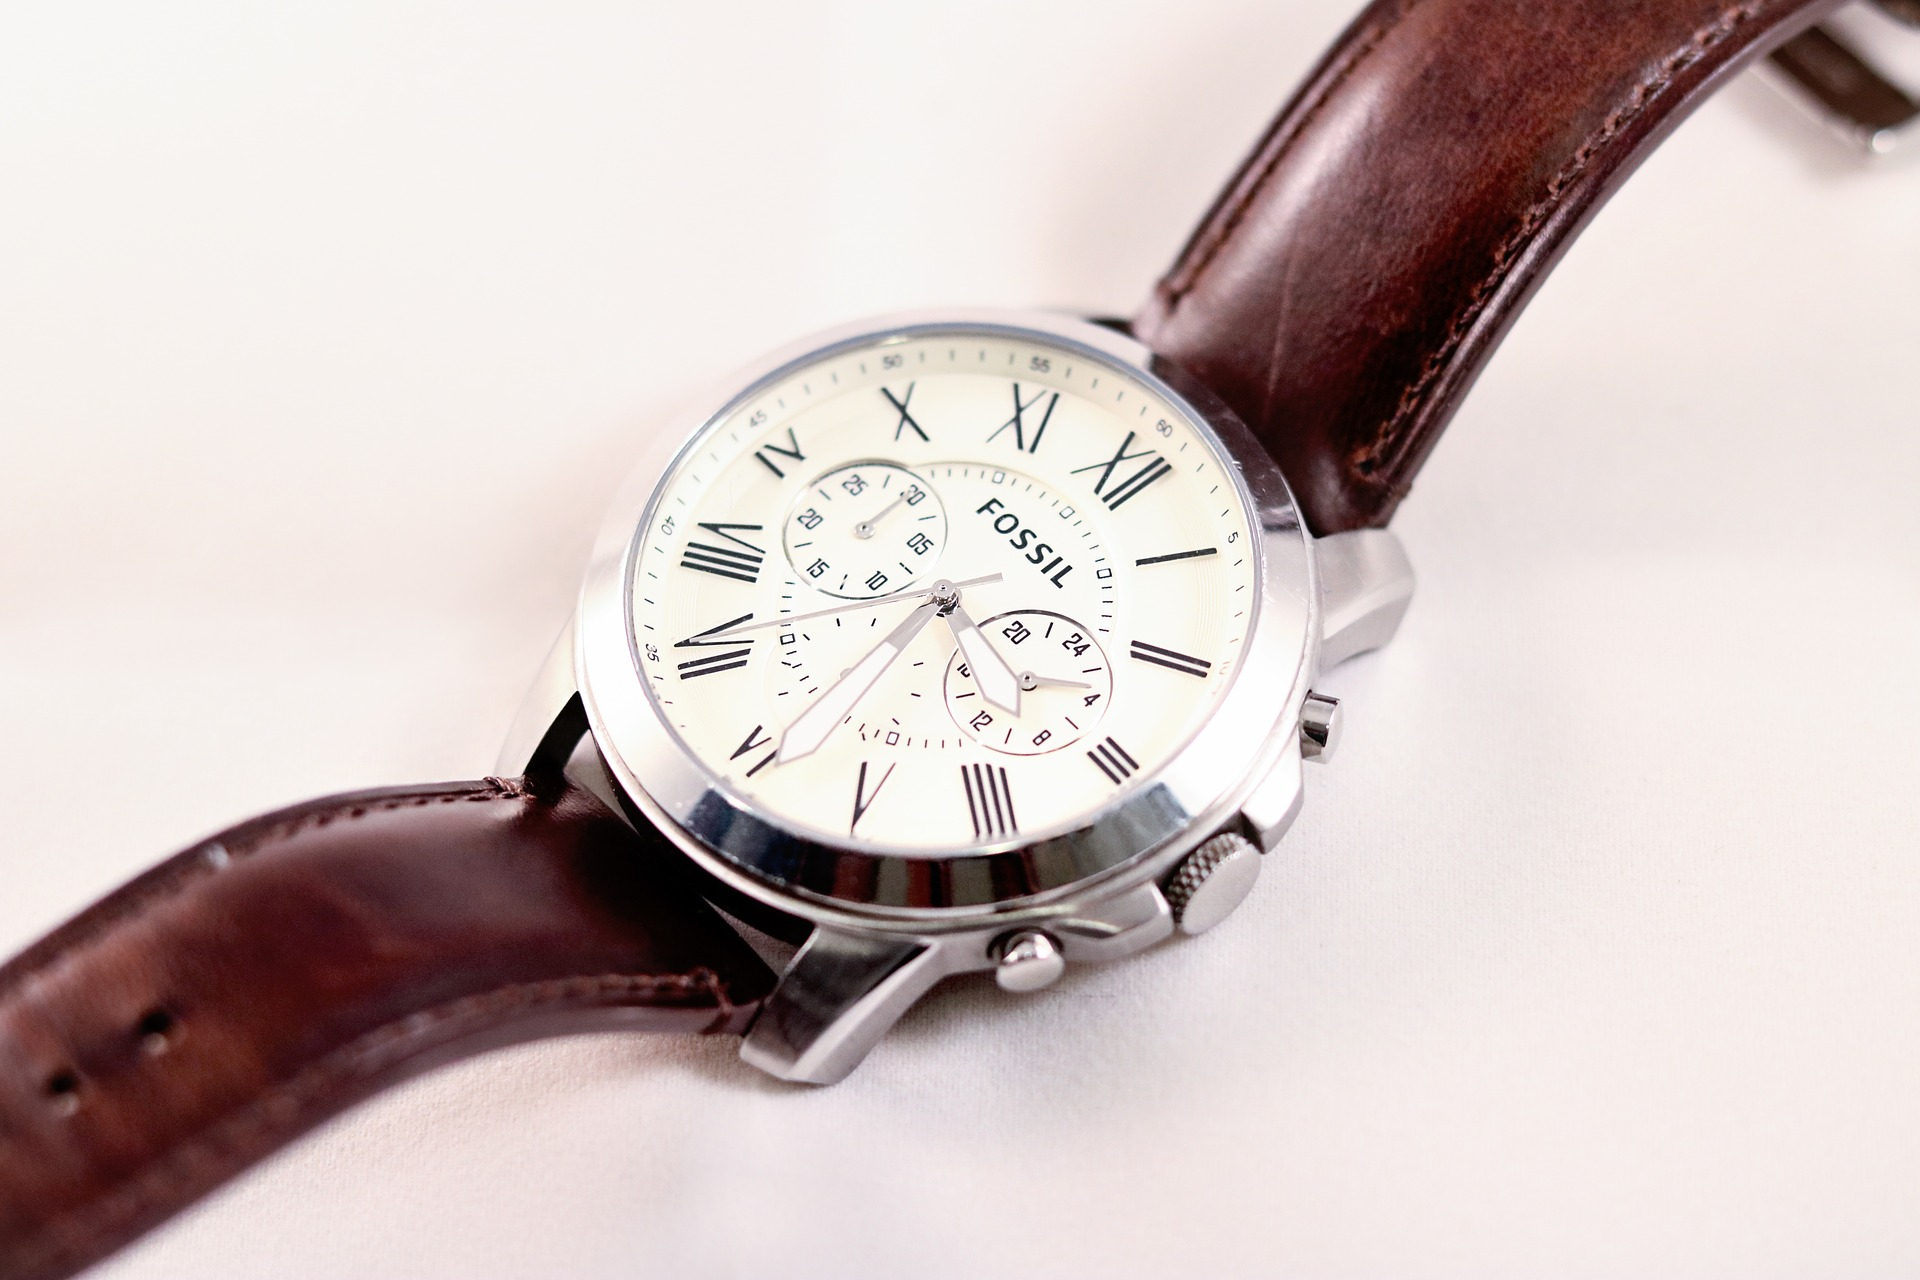 Time Classic Watch Formal Fossil, American Watch, Wristwatch, Luxury Watch, Leather Watch